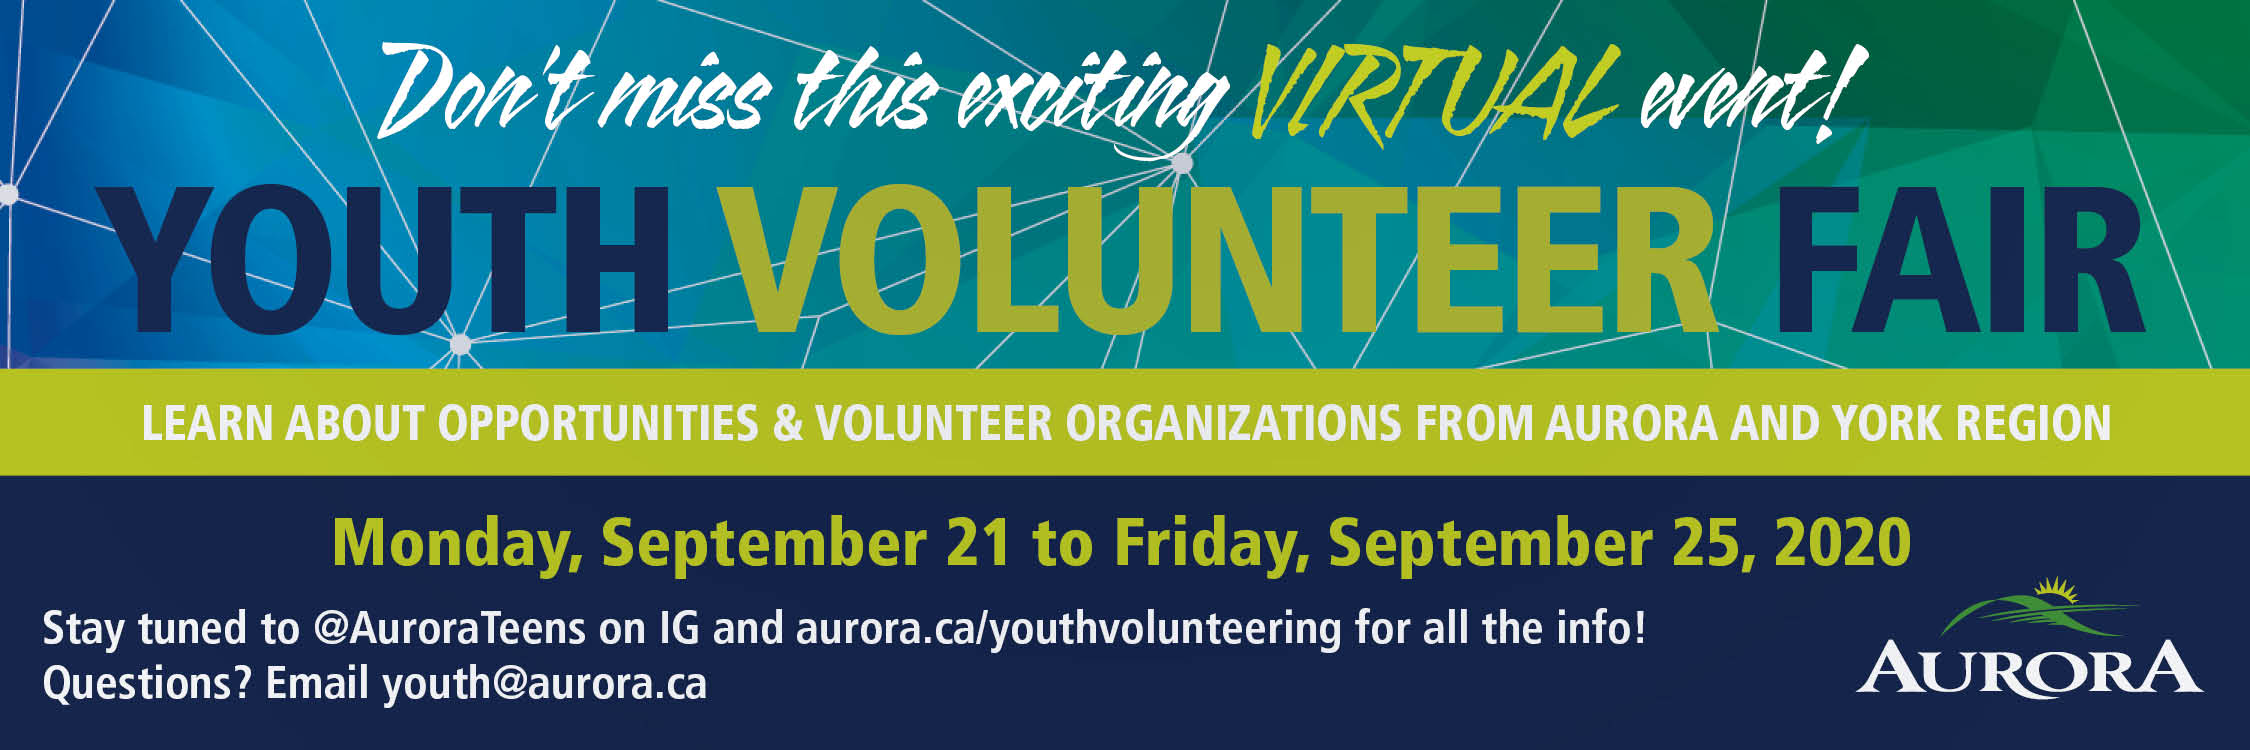 Youth volunteer fair September 21 to 25 virtual event